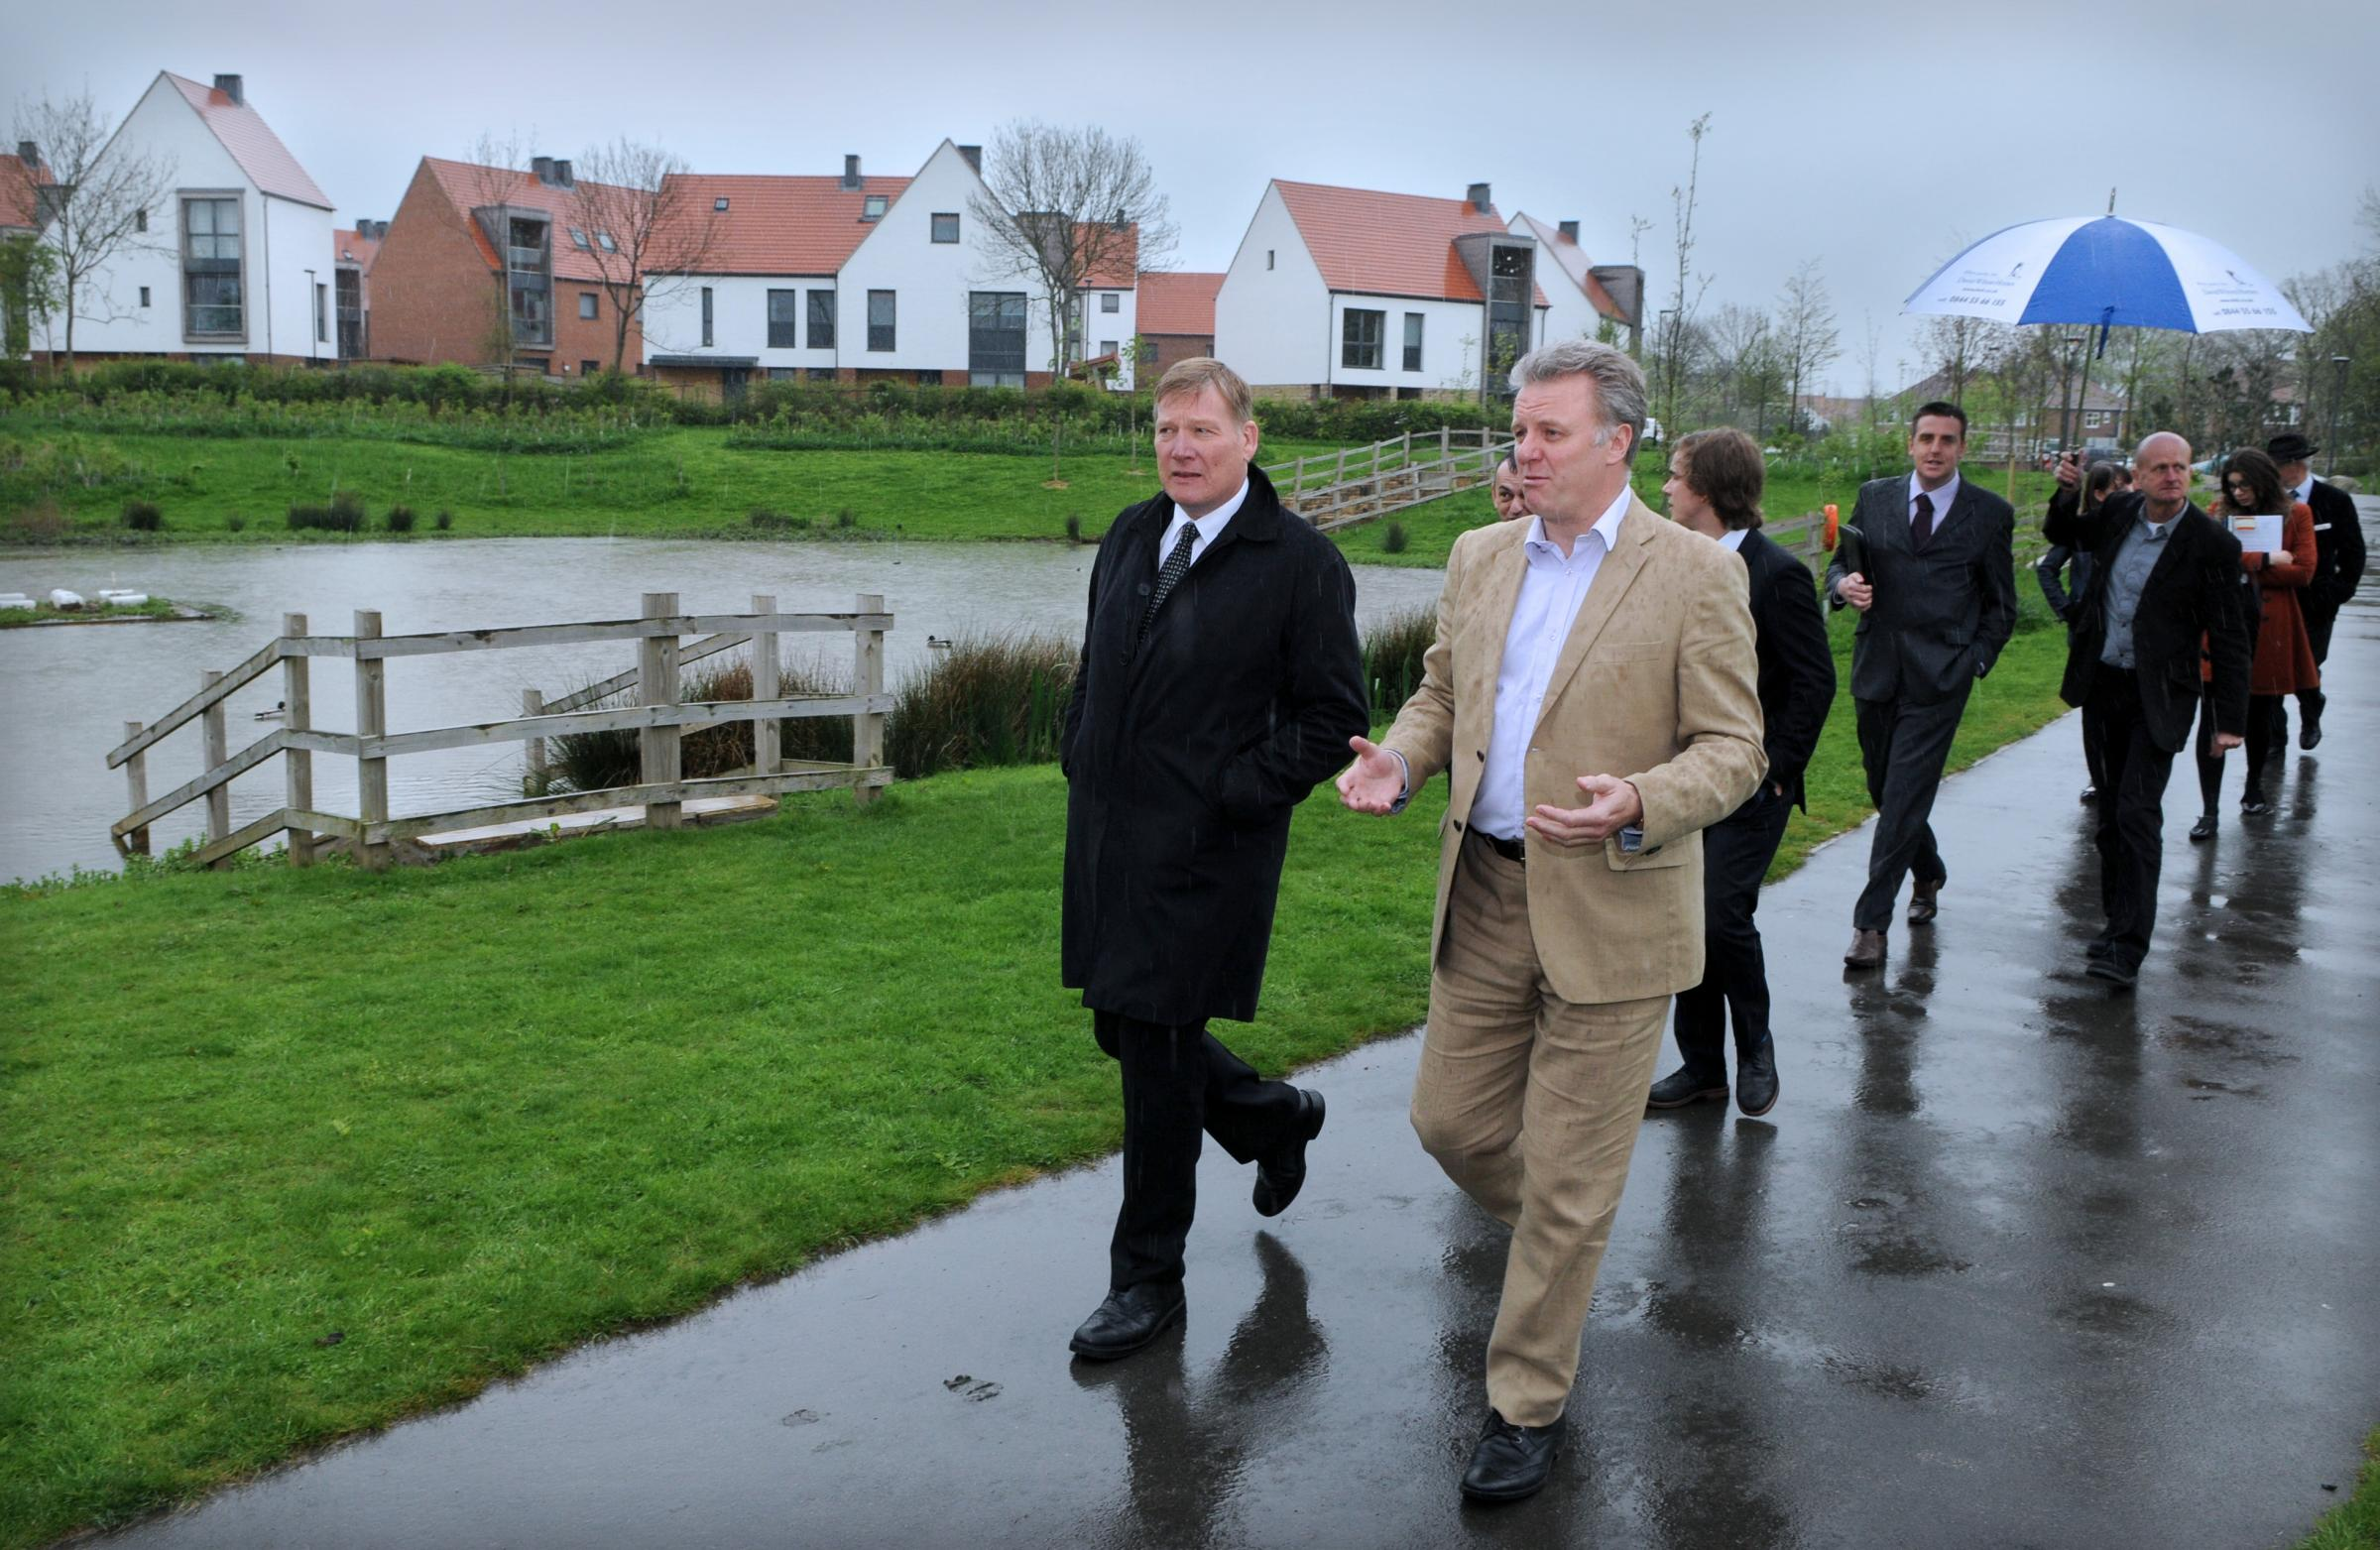 Housing Minister praises Trust's vision in creating Derwenthorpe